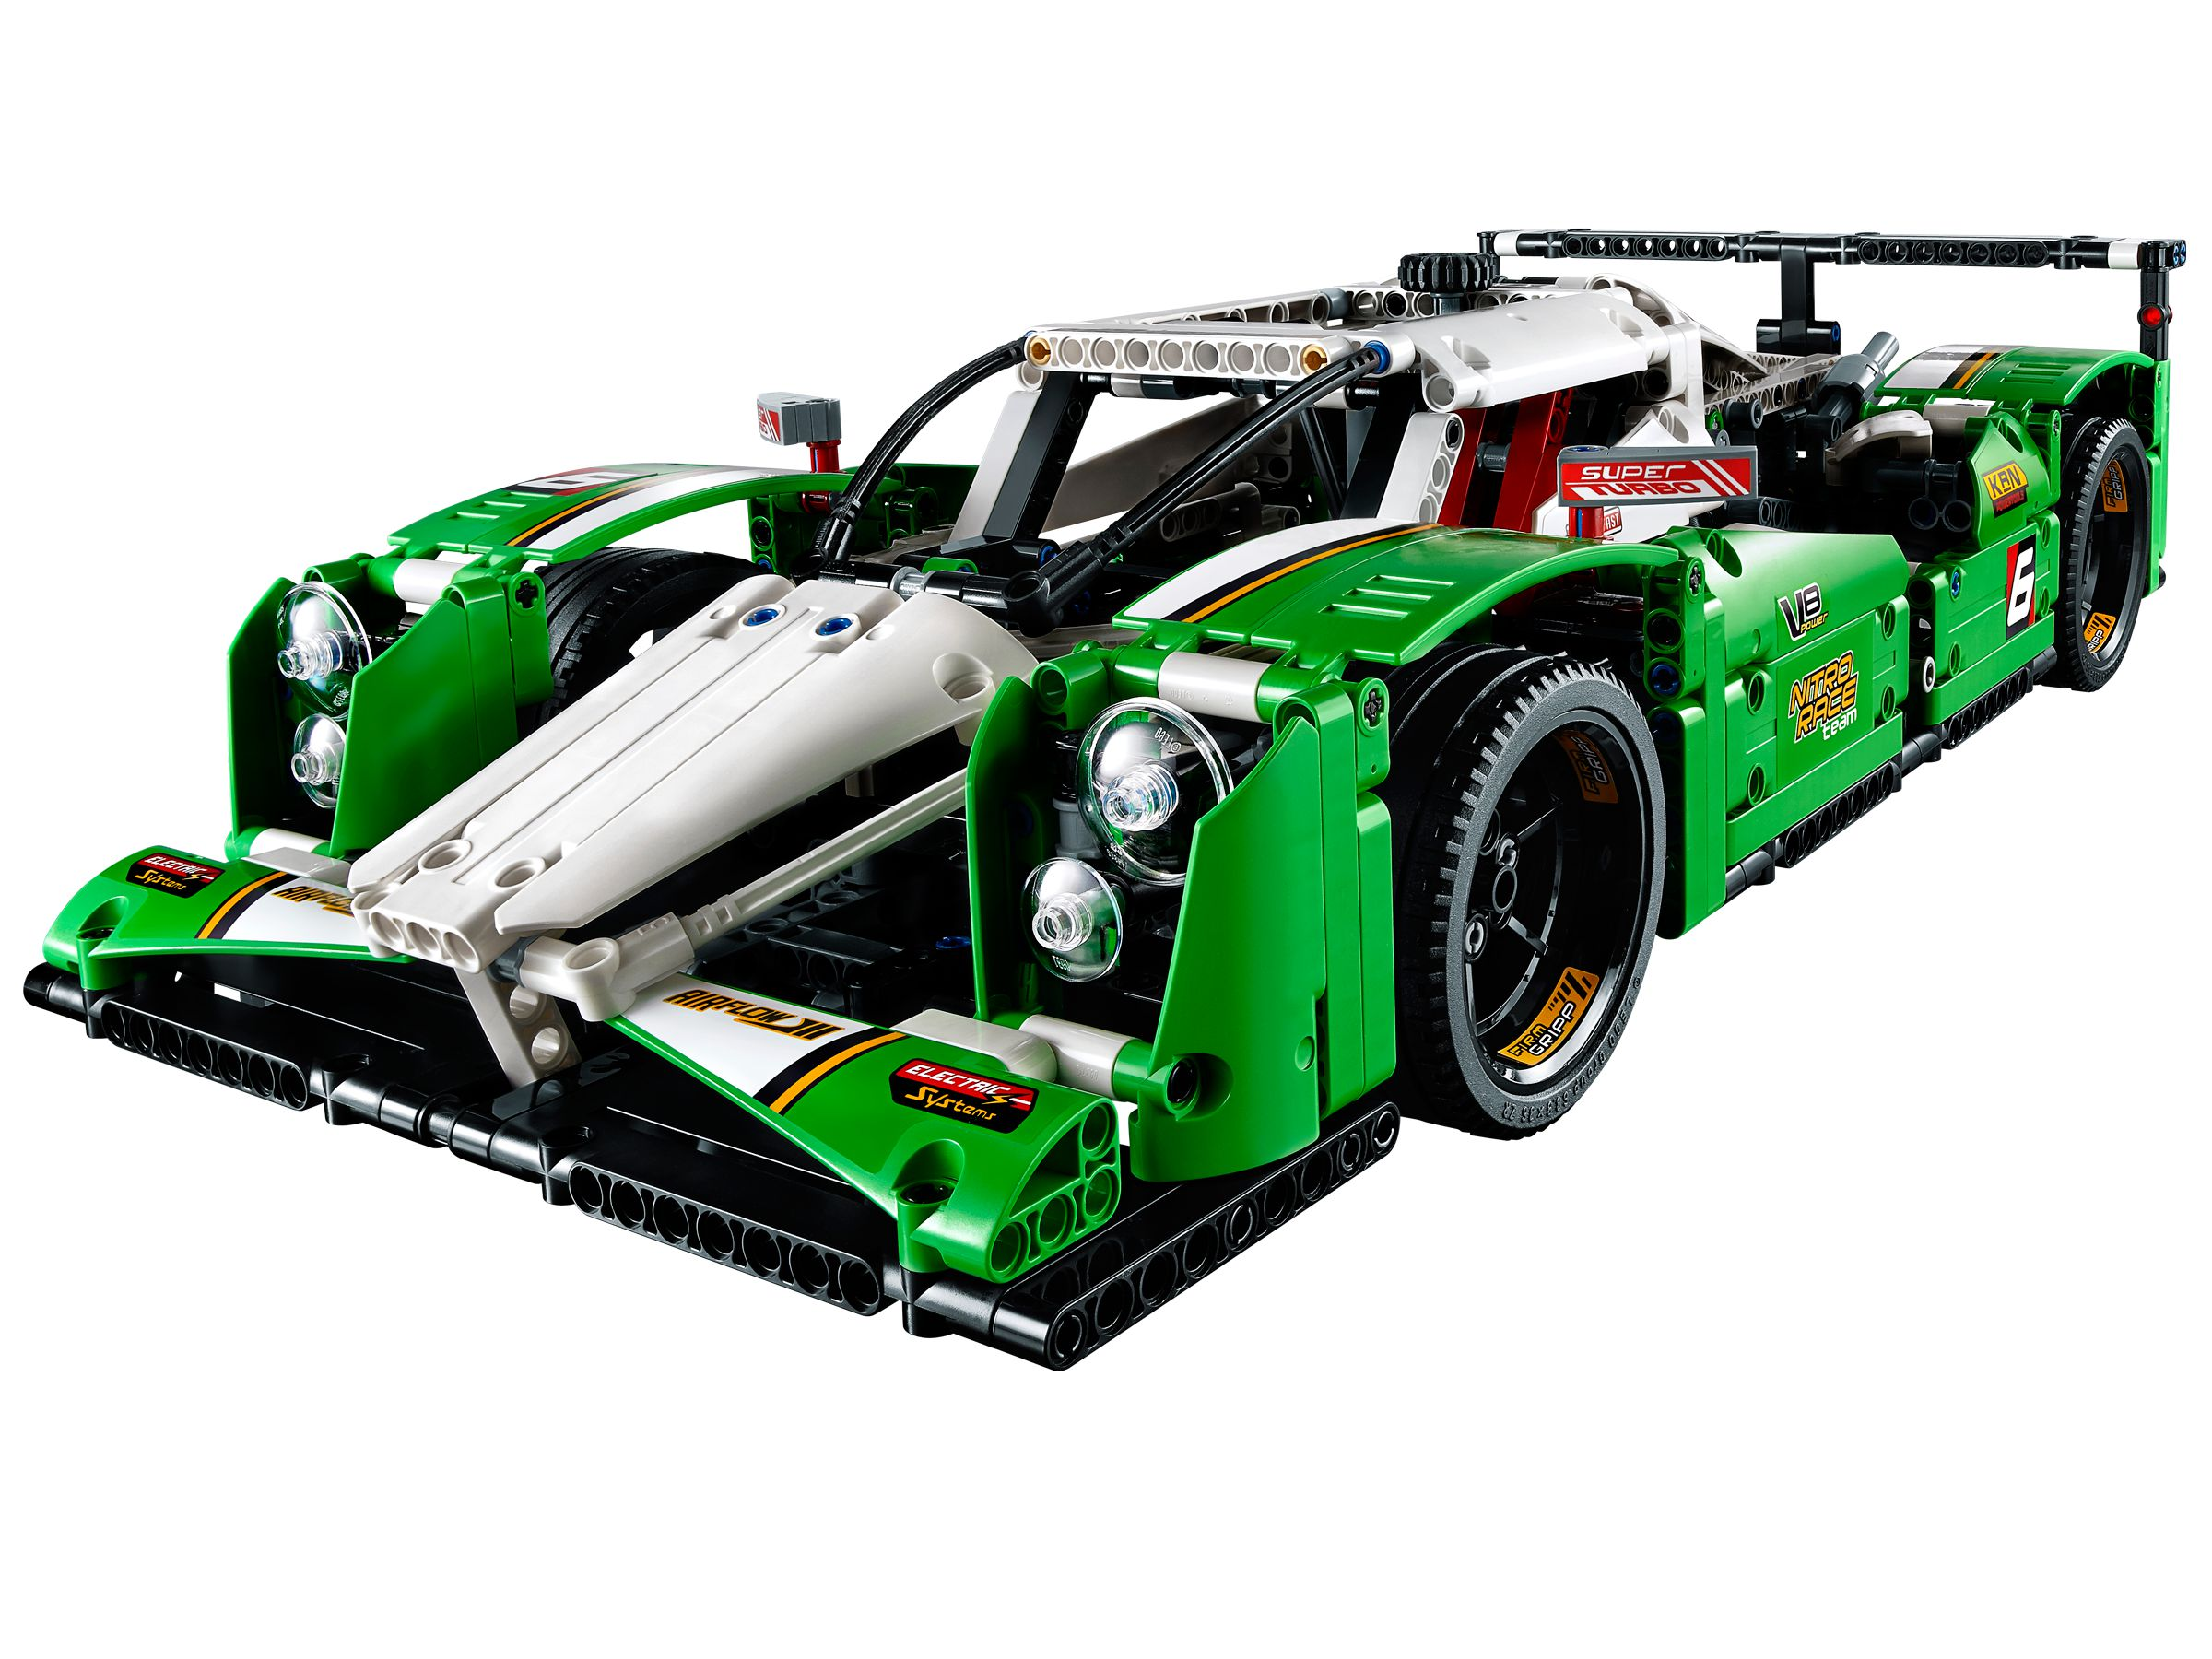 lego 42039 langstrecken rennwagen technic 2015 24 hours race car brickmerge. Black Bedroom Furniture Sets. Home Design Ideas